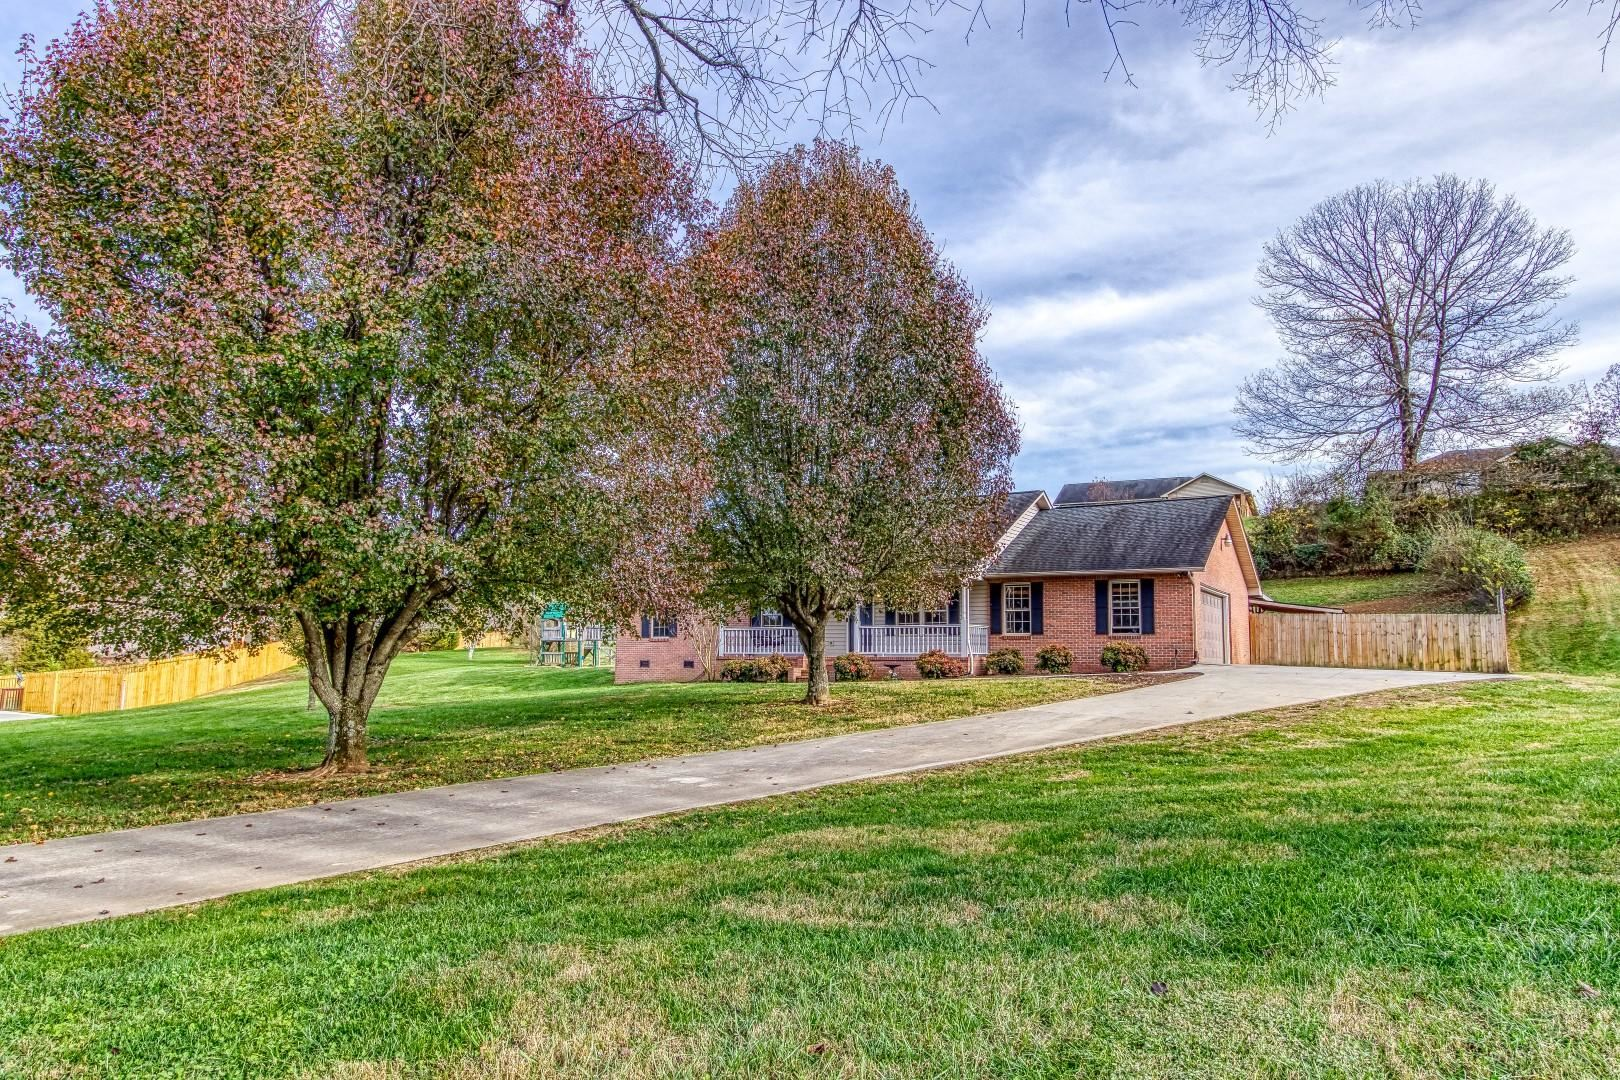 Photo of 1534 Broad River Lane, Sevierville, TN 37876 (MLS # 1137164)